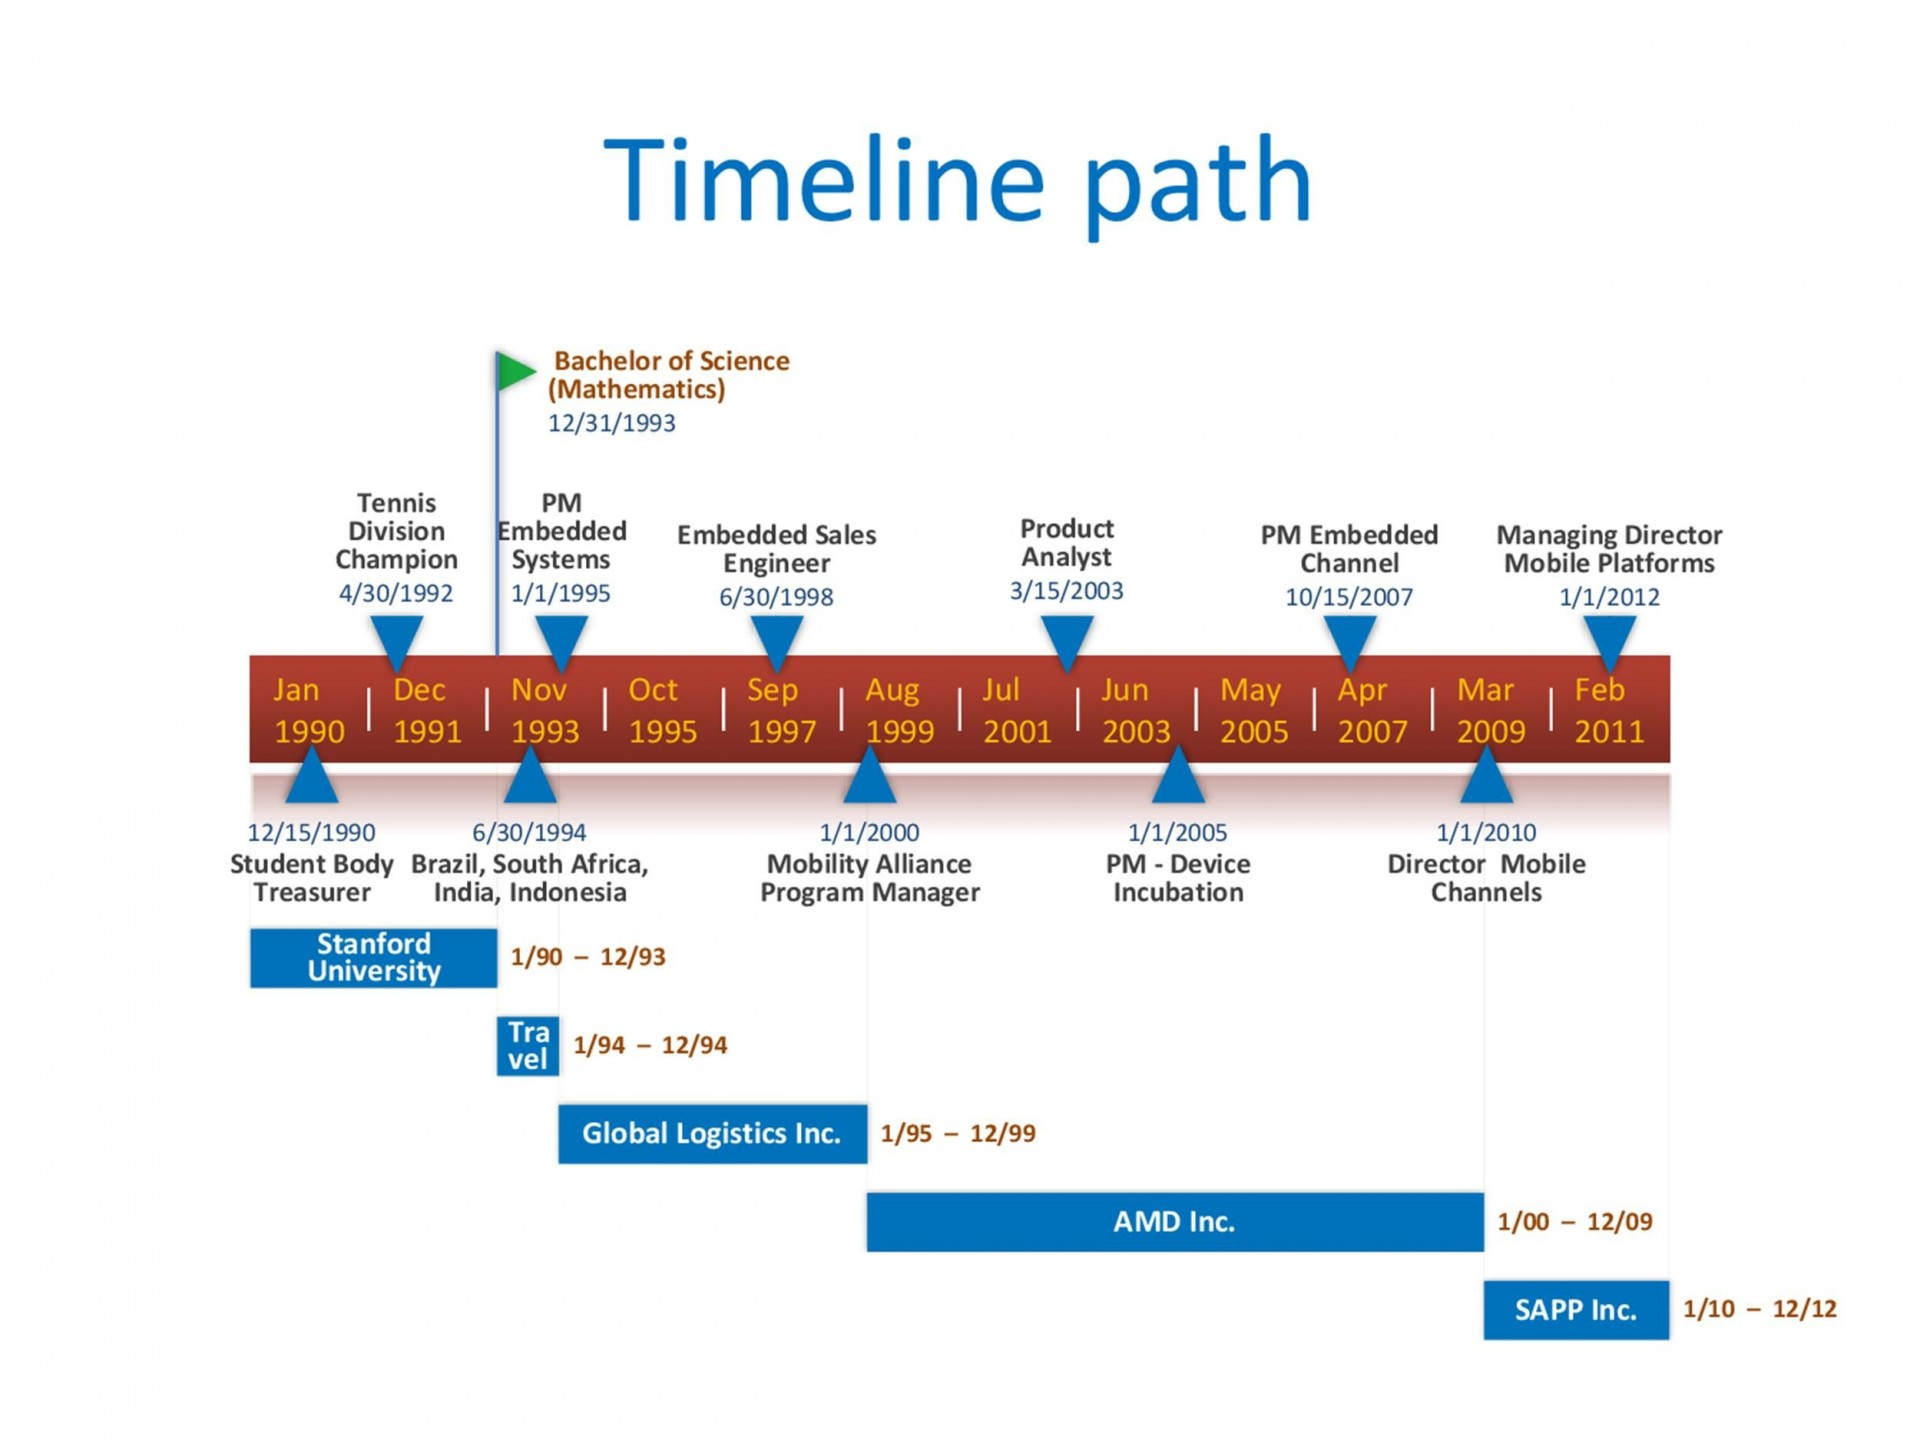 009 Dreaded Timeline Template In Word High Resolution  2010 Wordpres Free1920